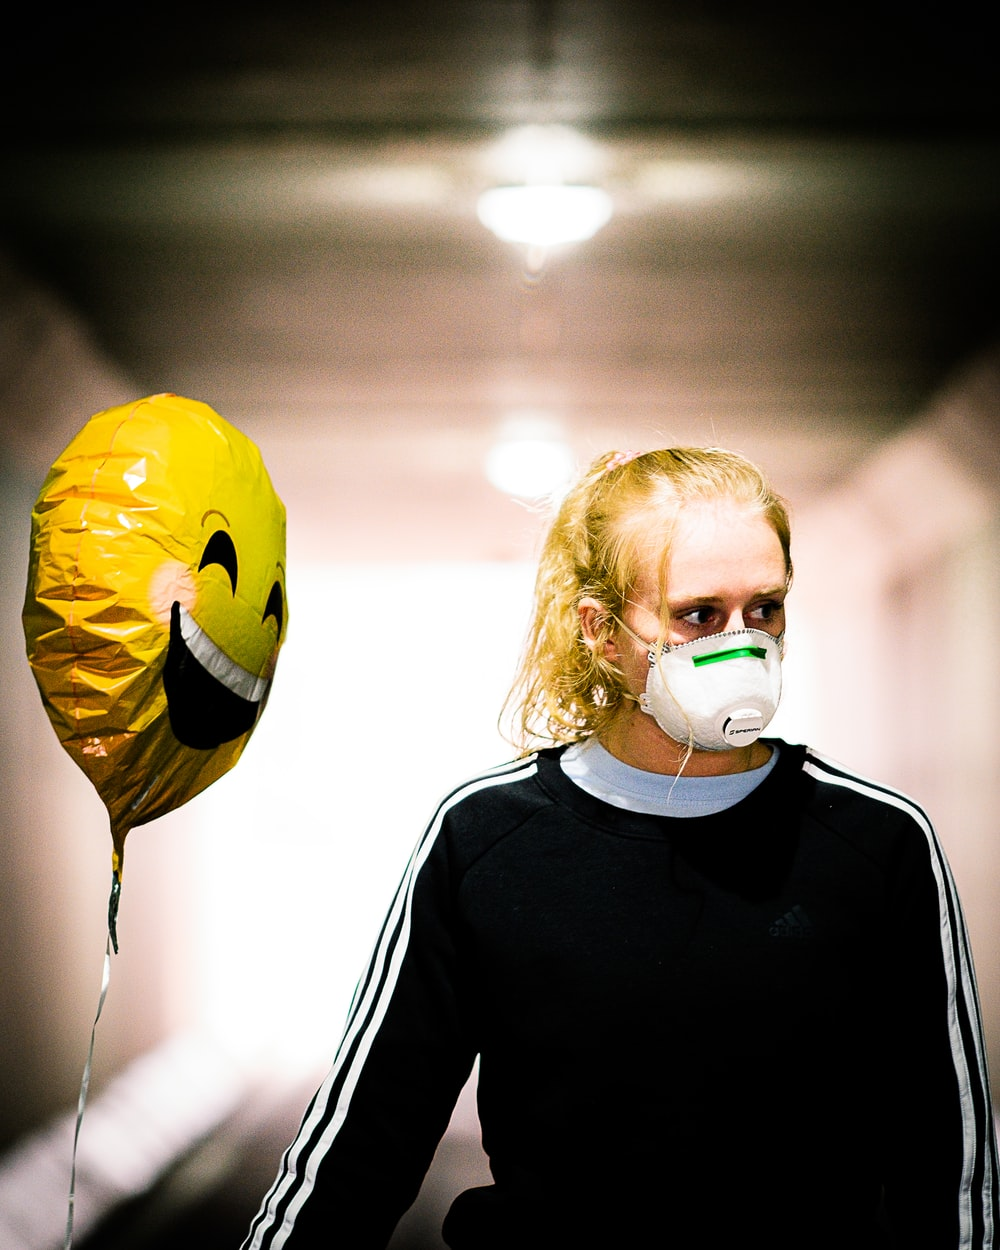 woman in black long sleeve shirt with yellow mask